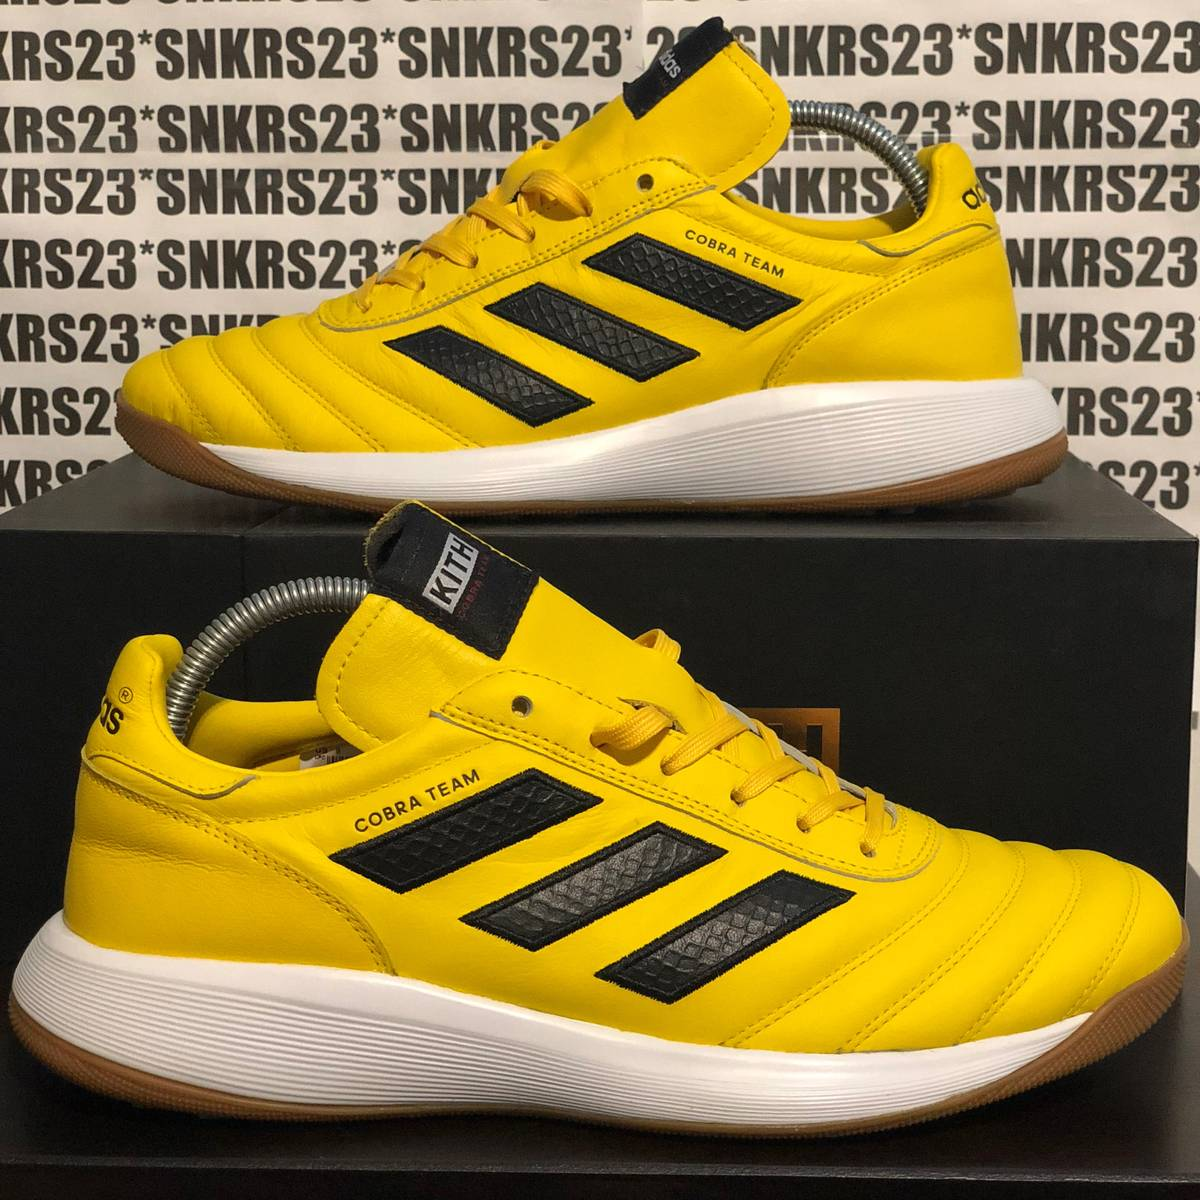 online store 12266 d279f Adidas adidas Copa Mundial Turf Trainer Kith Cobras Size 9 - Low-Top  Sneakers for Sale - Grailed